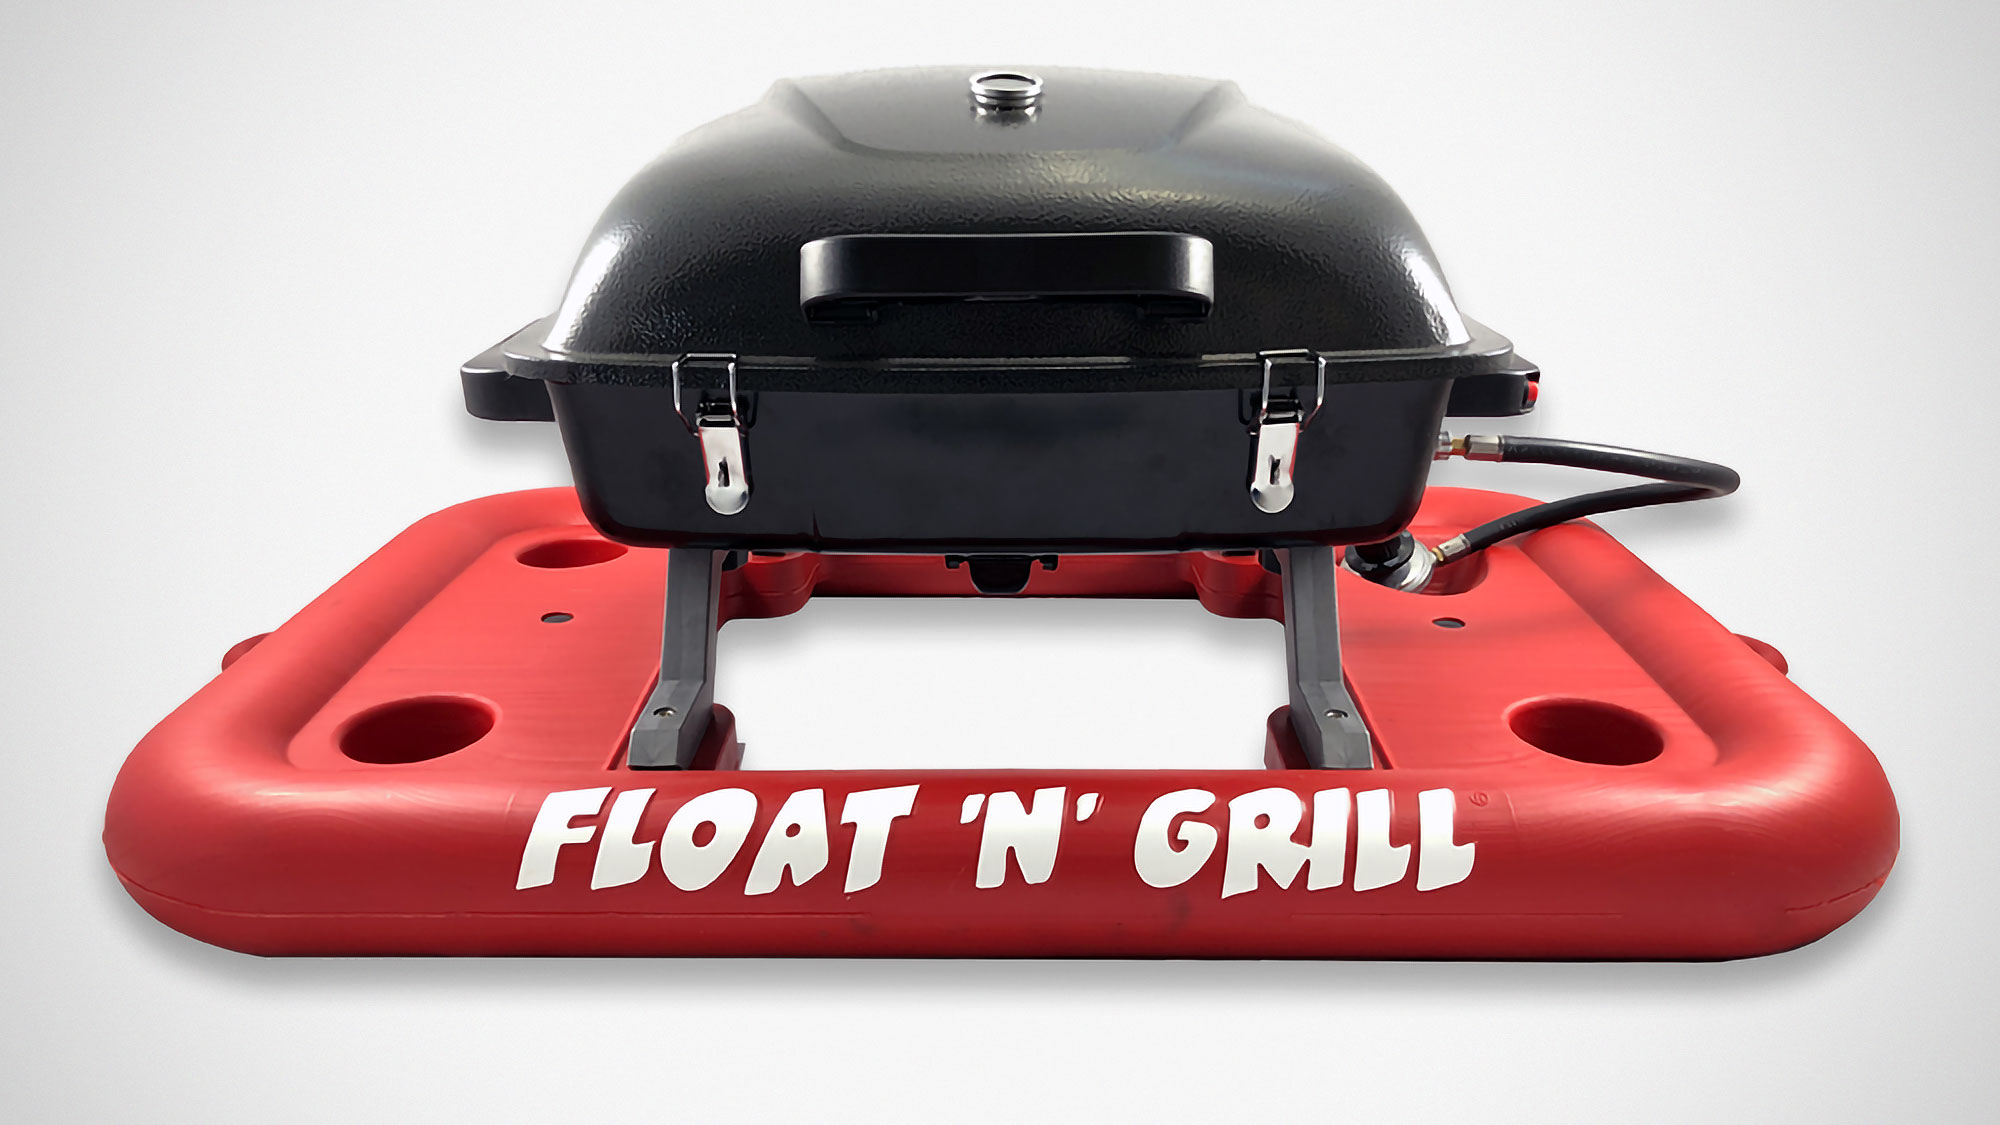 Float 'N' Grill Portable Propane Grill